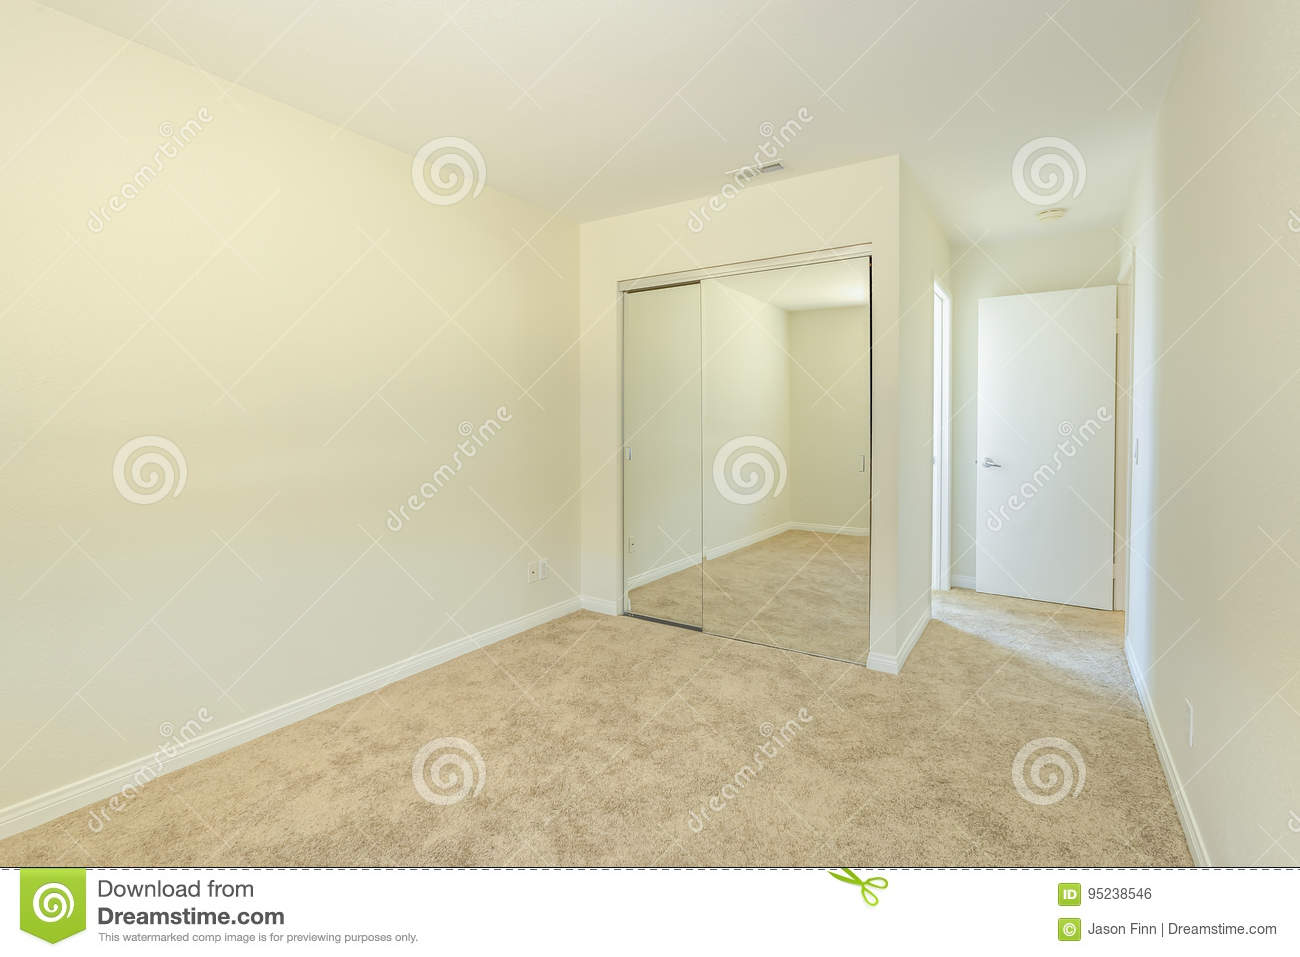 Mirrored Closet Doors In Bedroom In San Diego Apartment Stock Photo